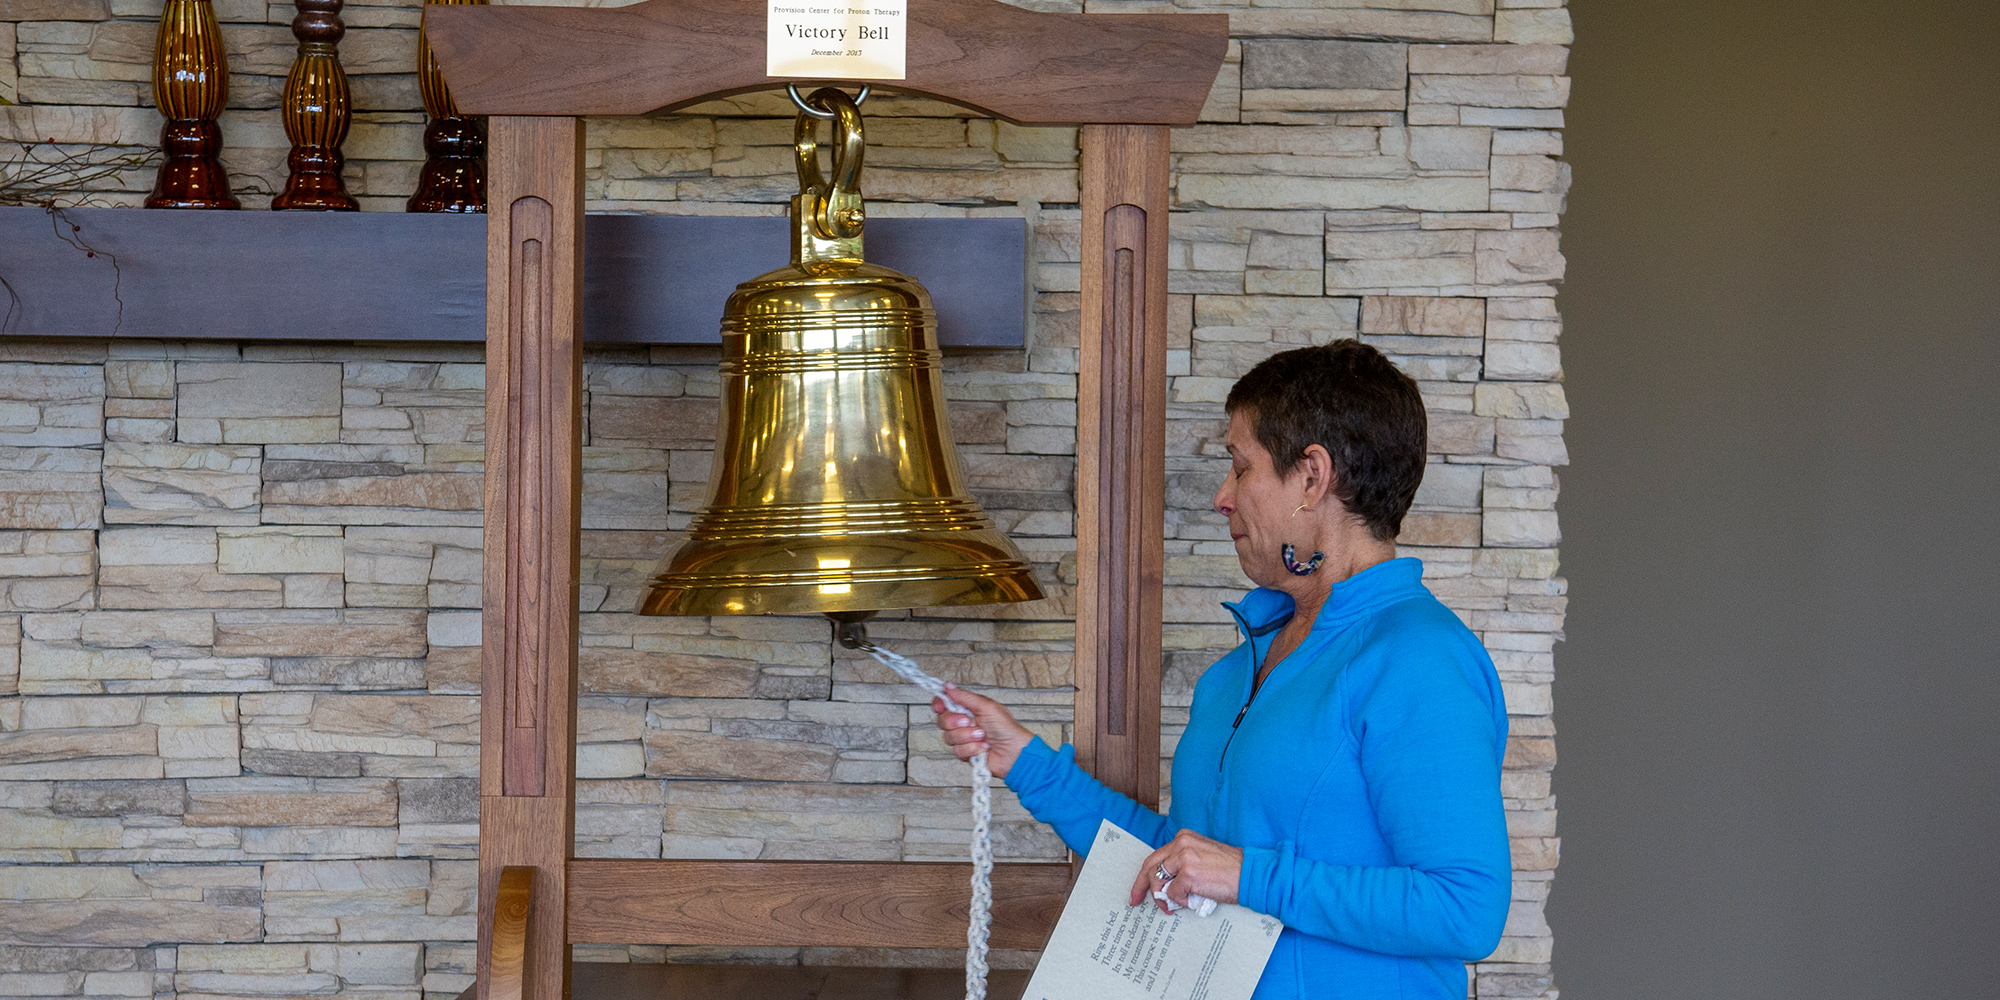 Casey rings the victory bell after completing breast cancer treatment at Provision CARES Proton Therapy Knoxville